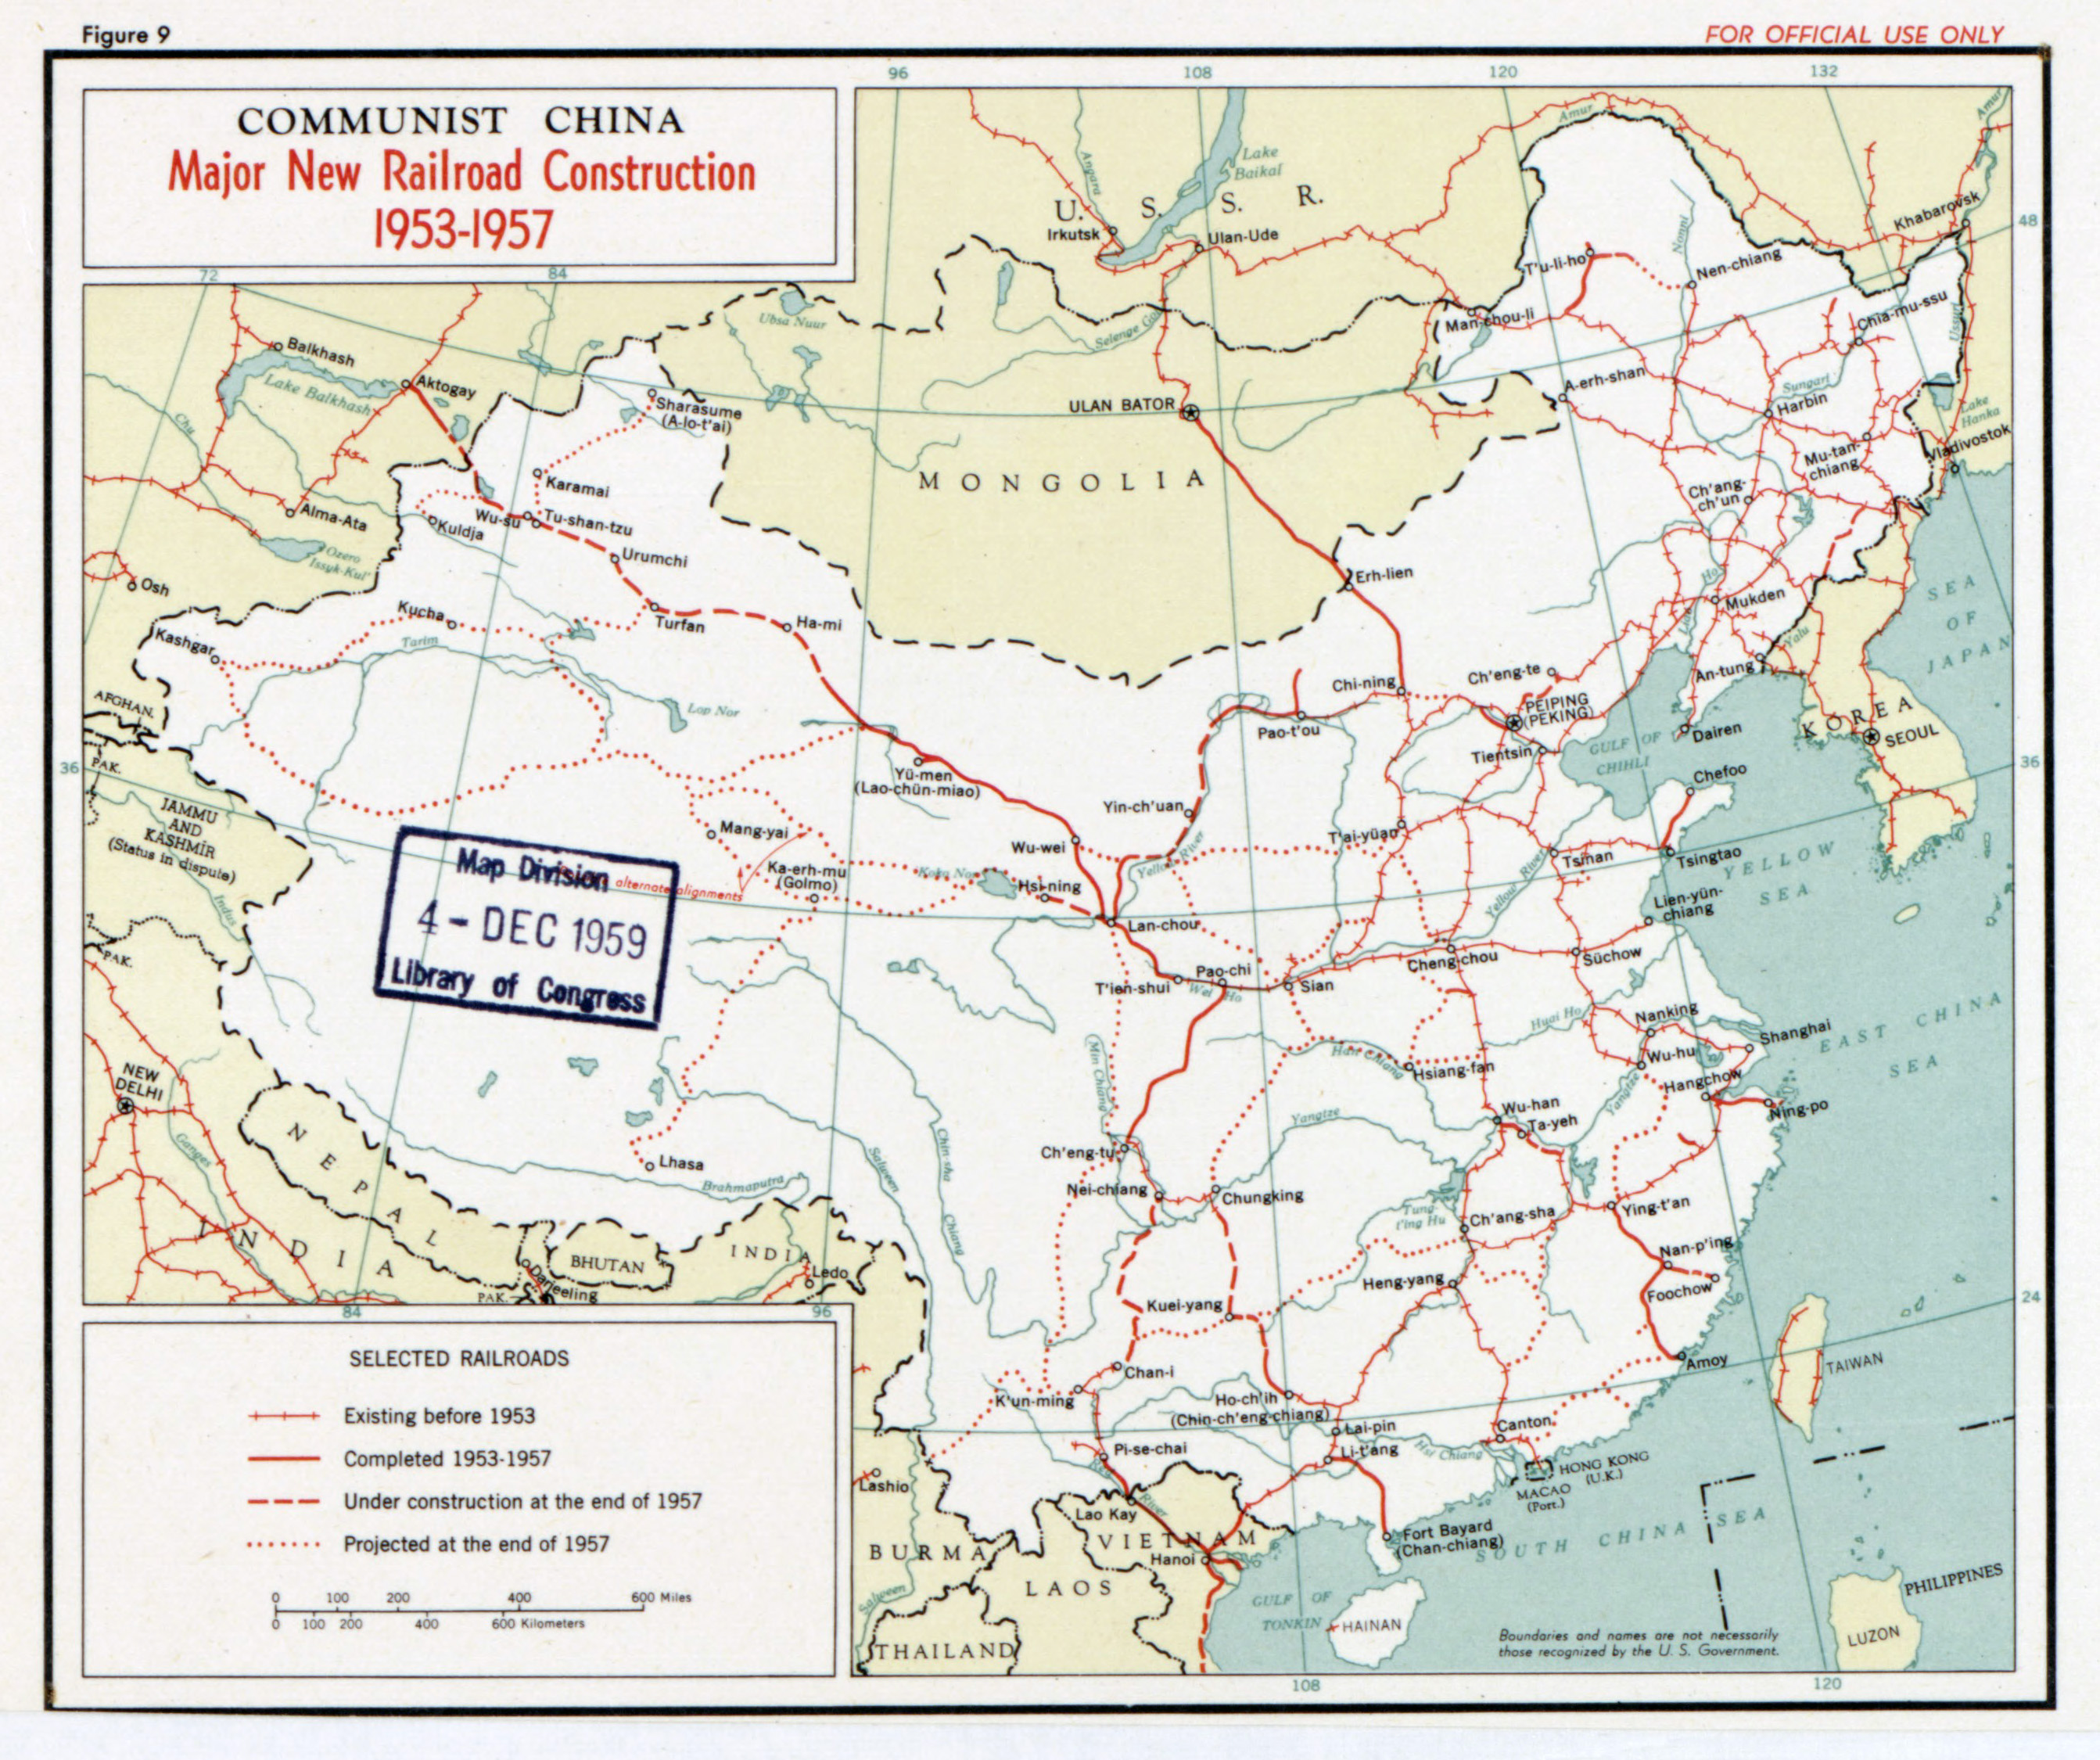 Large detailed major new railroad construction map of communist large detailed major new railroad construction map of communist china 1953 1957 gumiabroncs Gallery